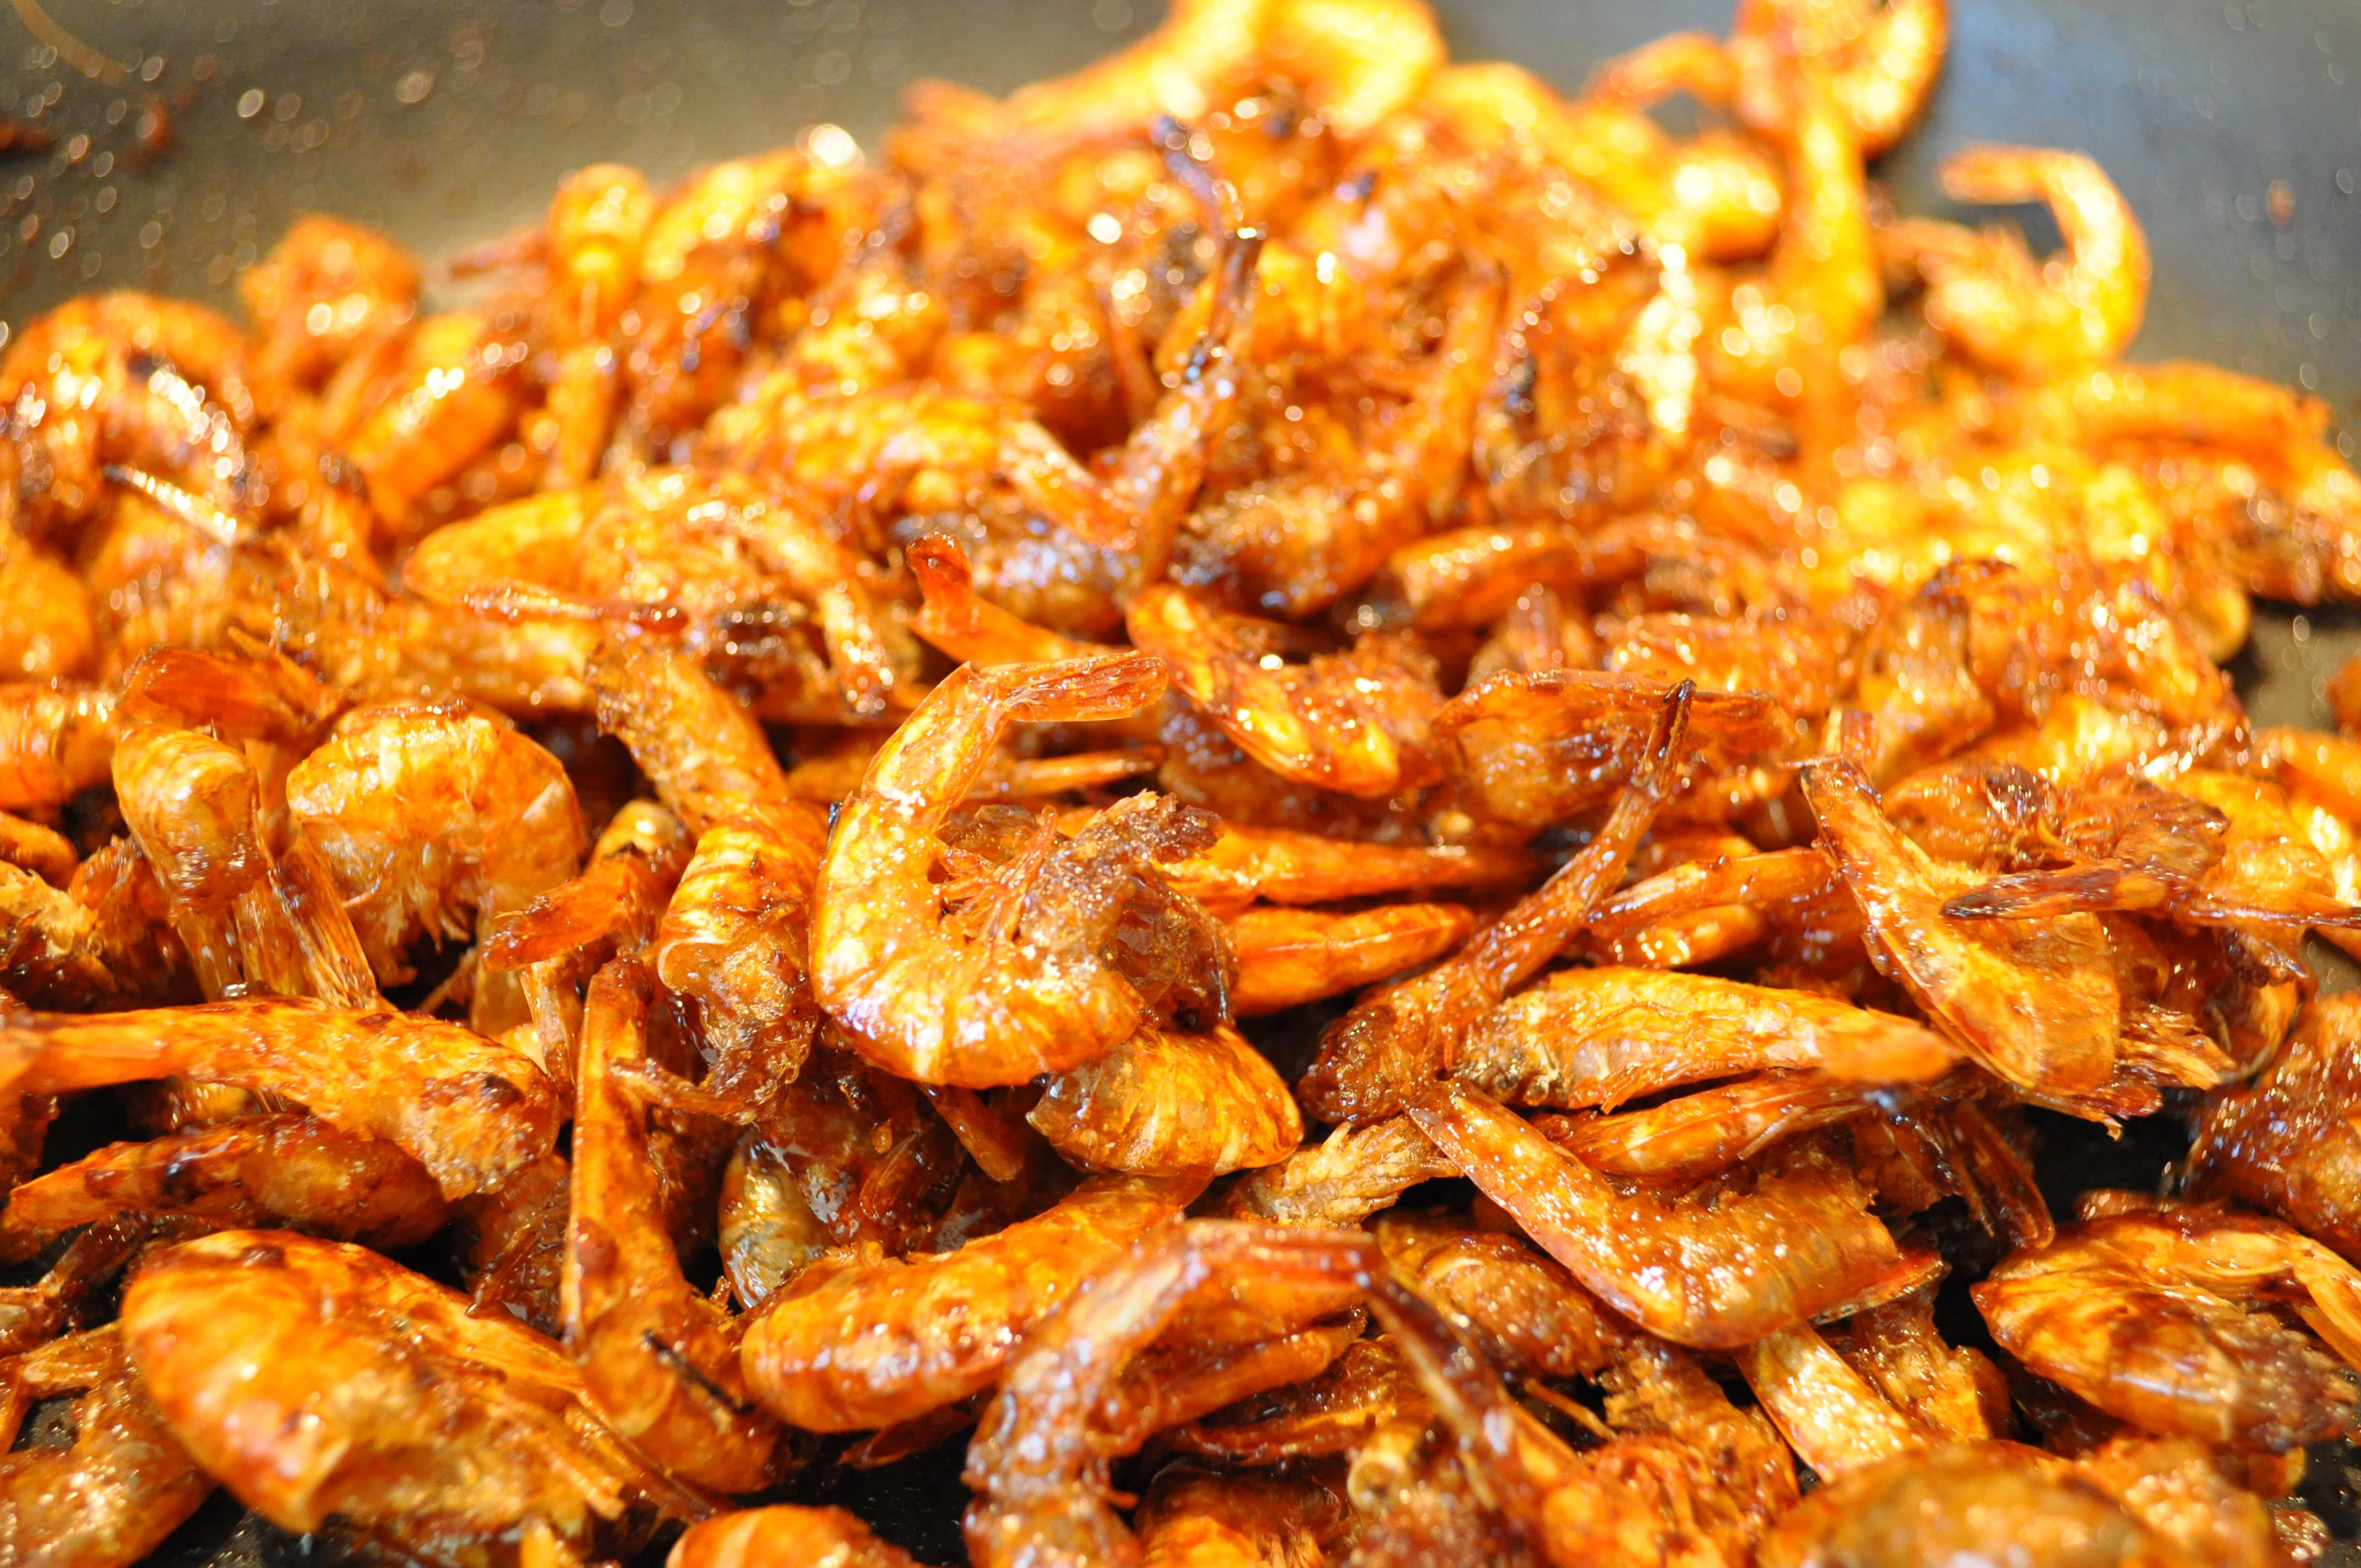 Dried shrimp cooked